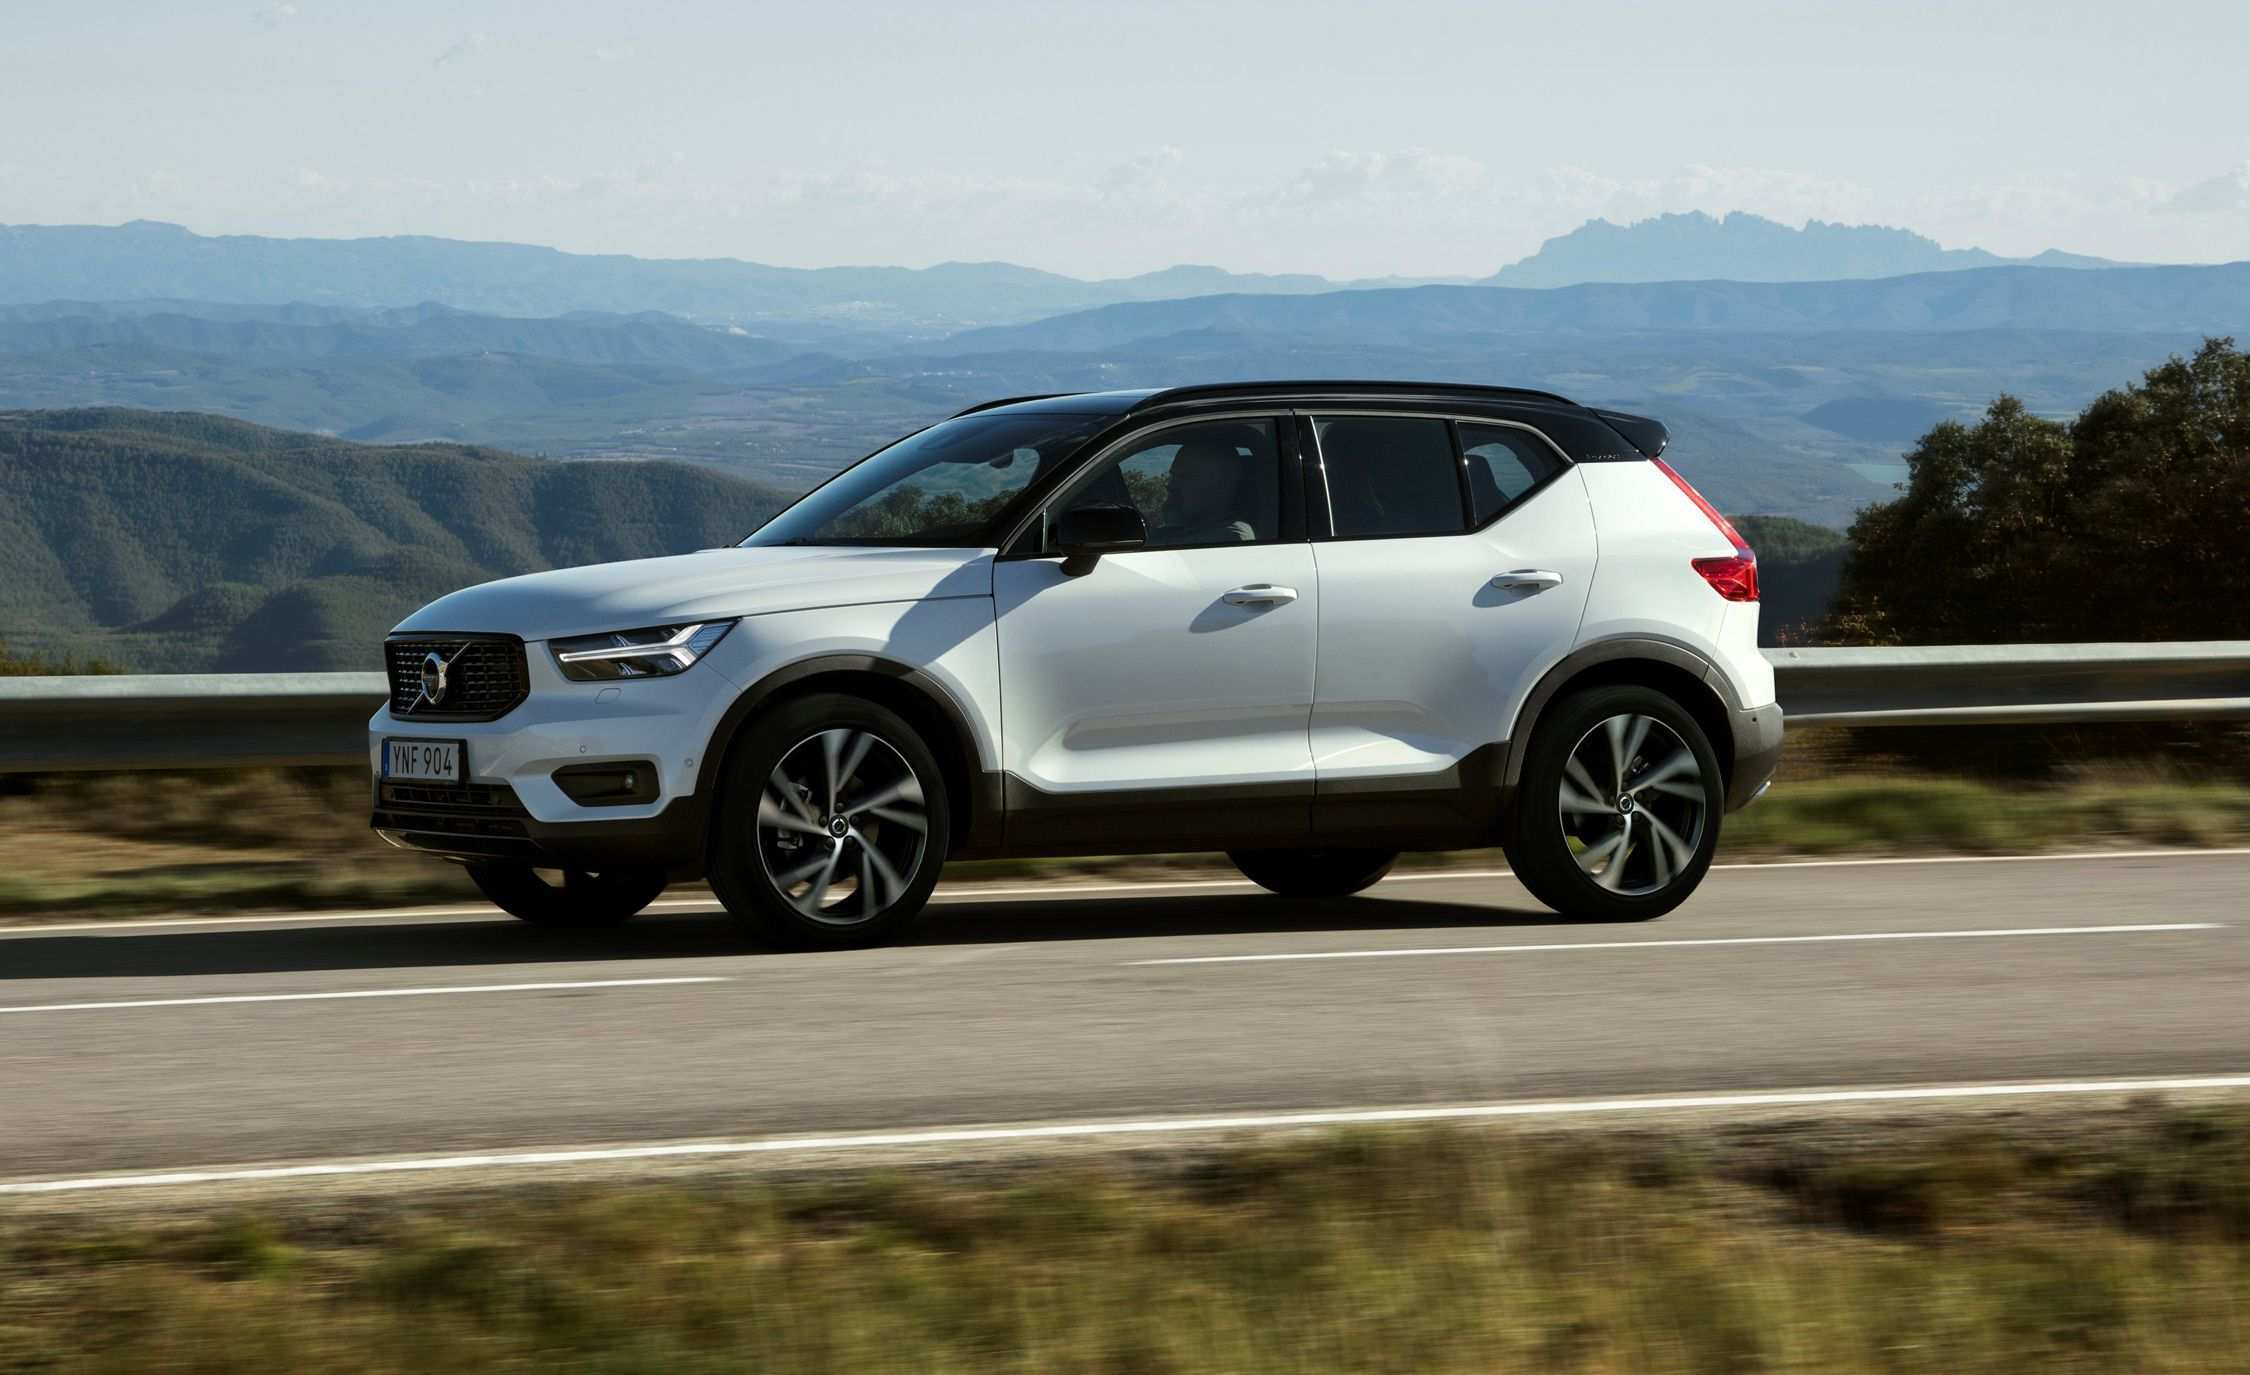 23 Concept of Volvo 2019 Xc40 Review Configurations for Volvo 2019 Xc40 Review